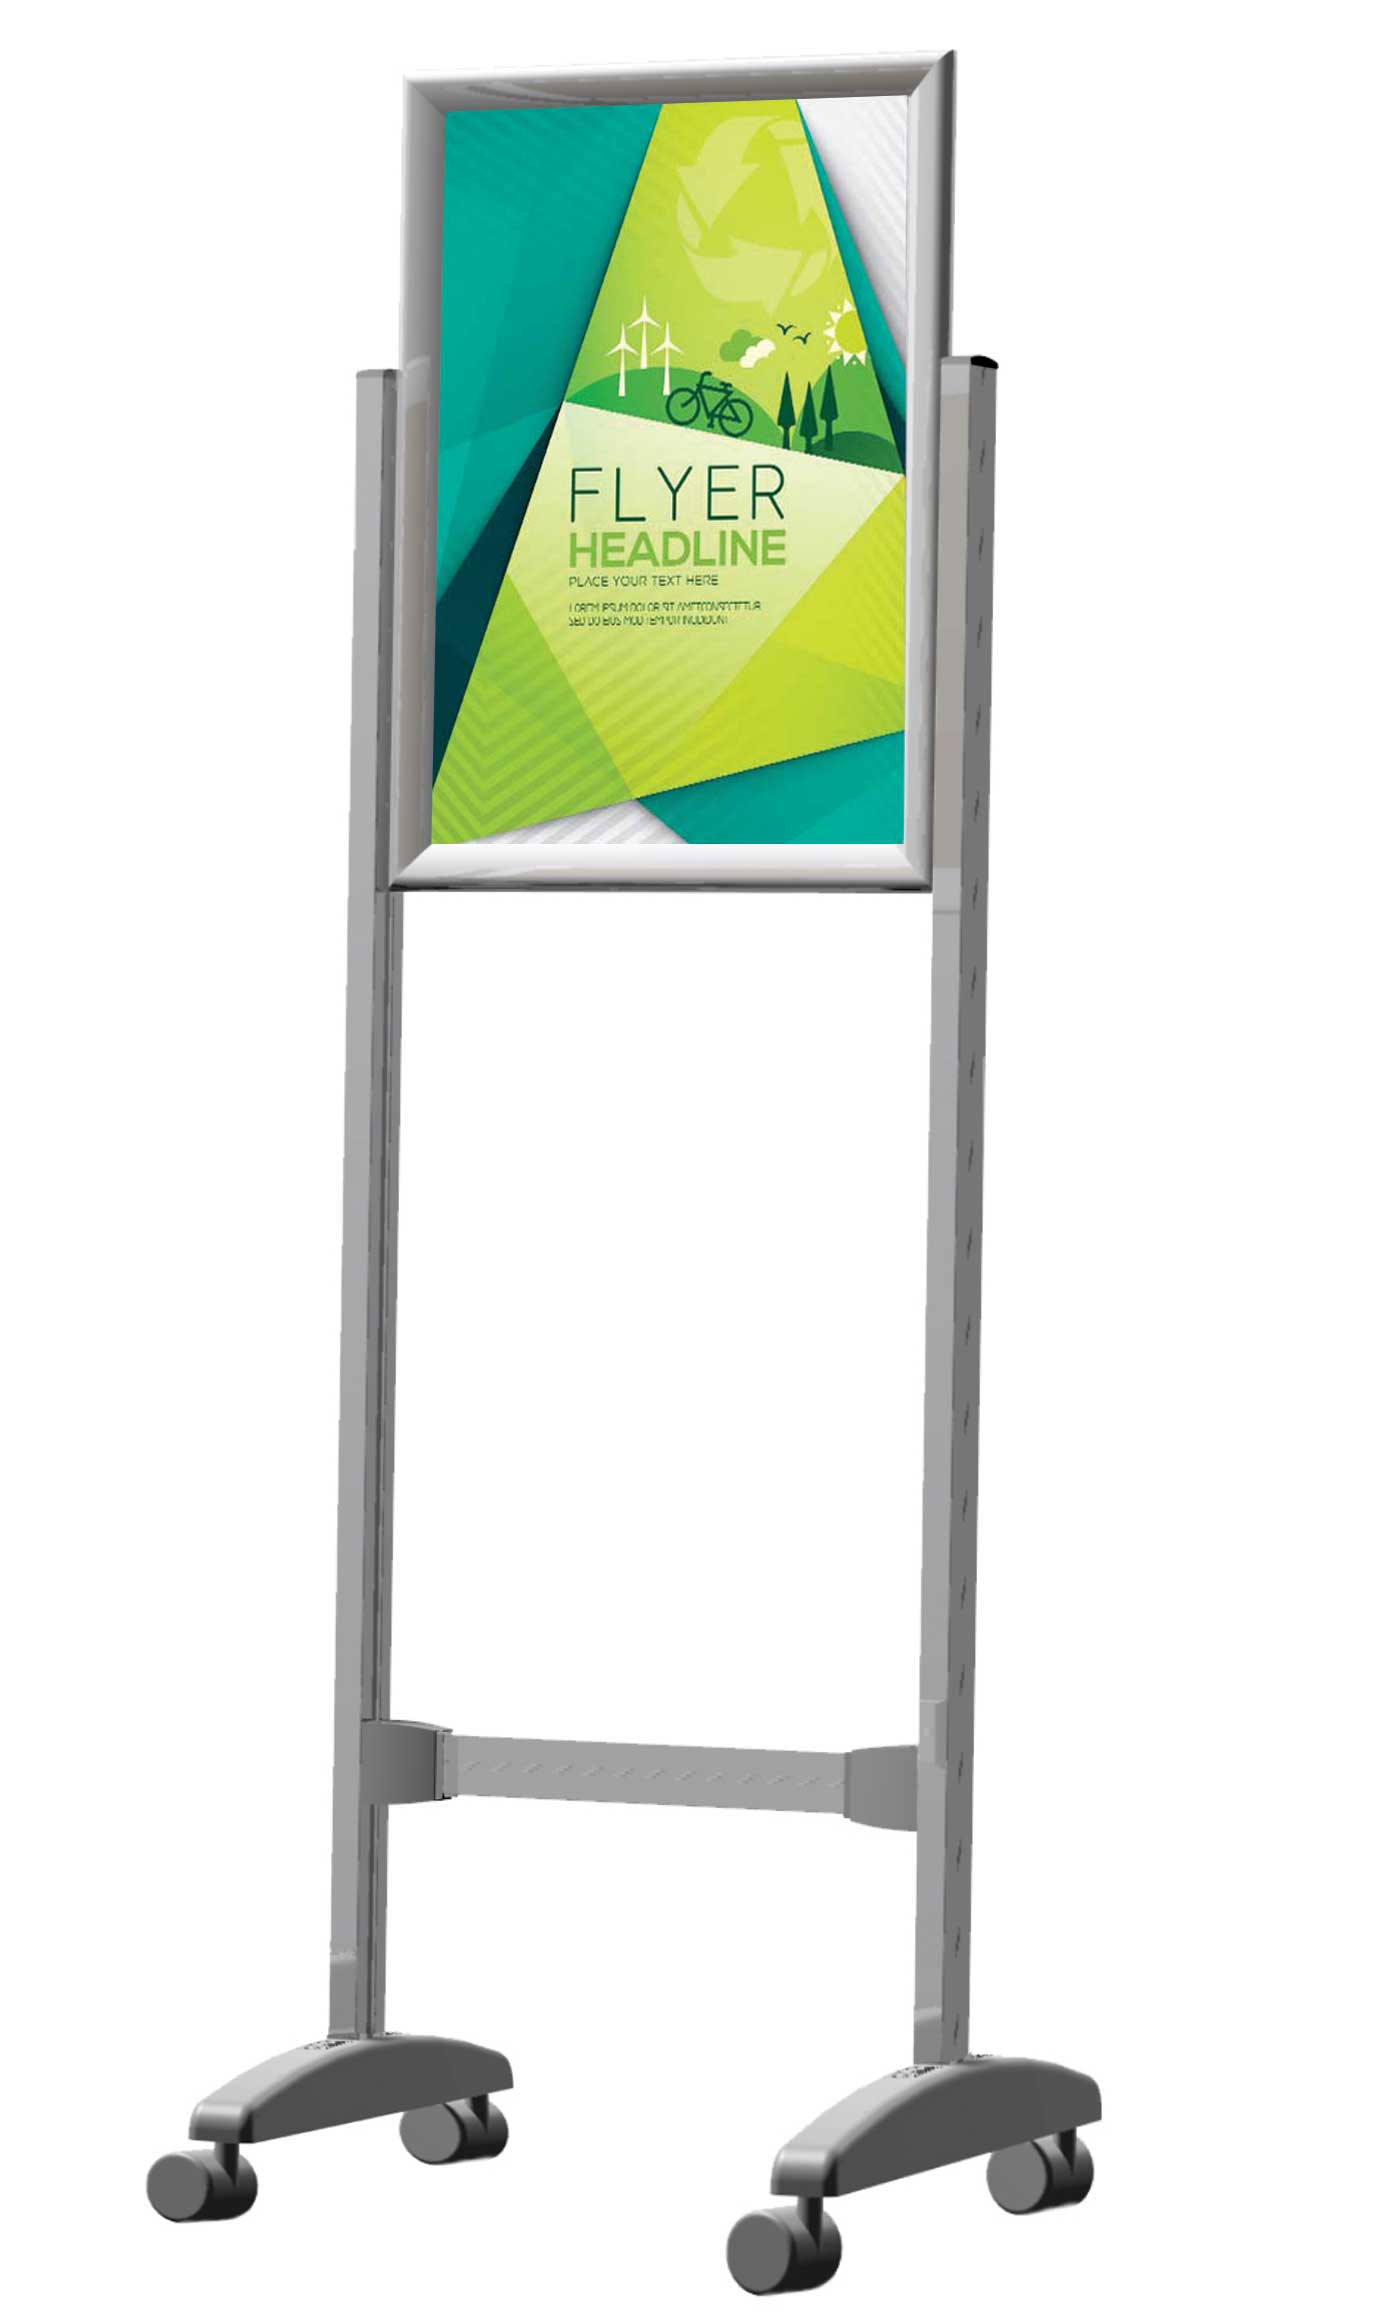 Buy Parrot Poster Frame Stands - Double Sided A0 Online | Tigmoo